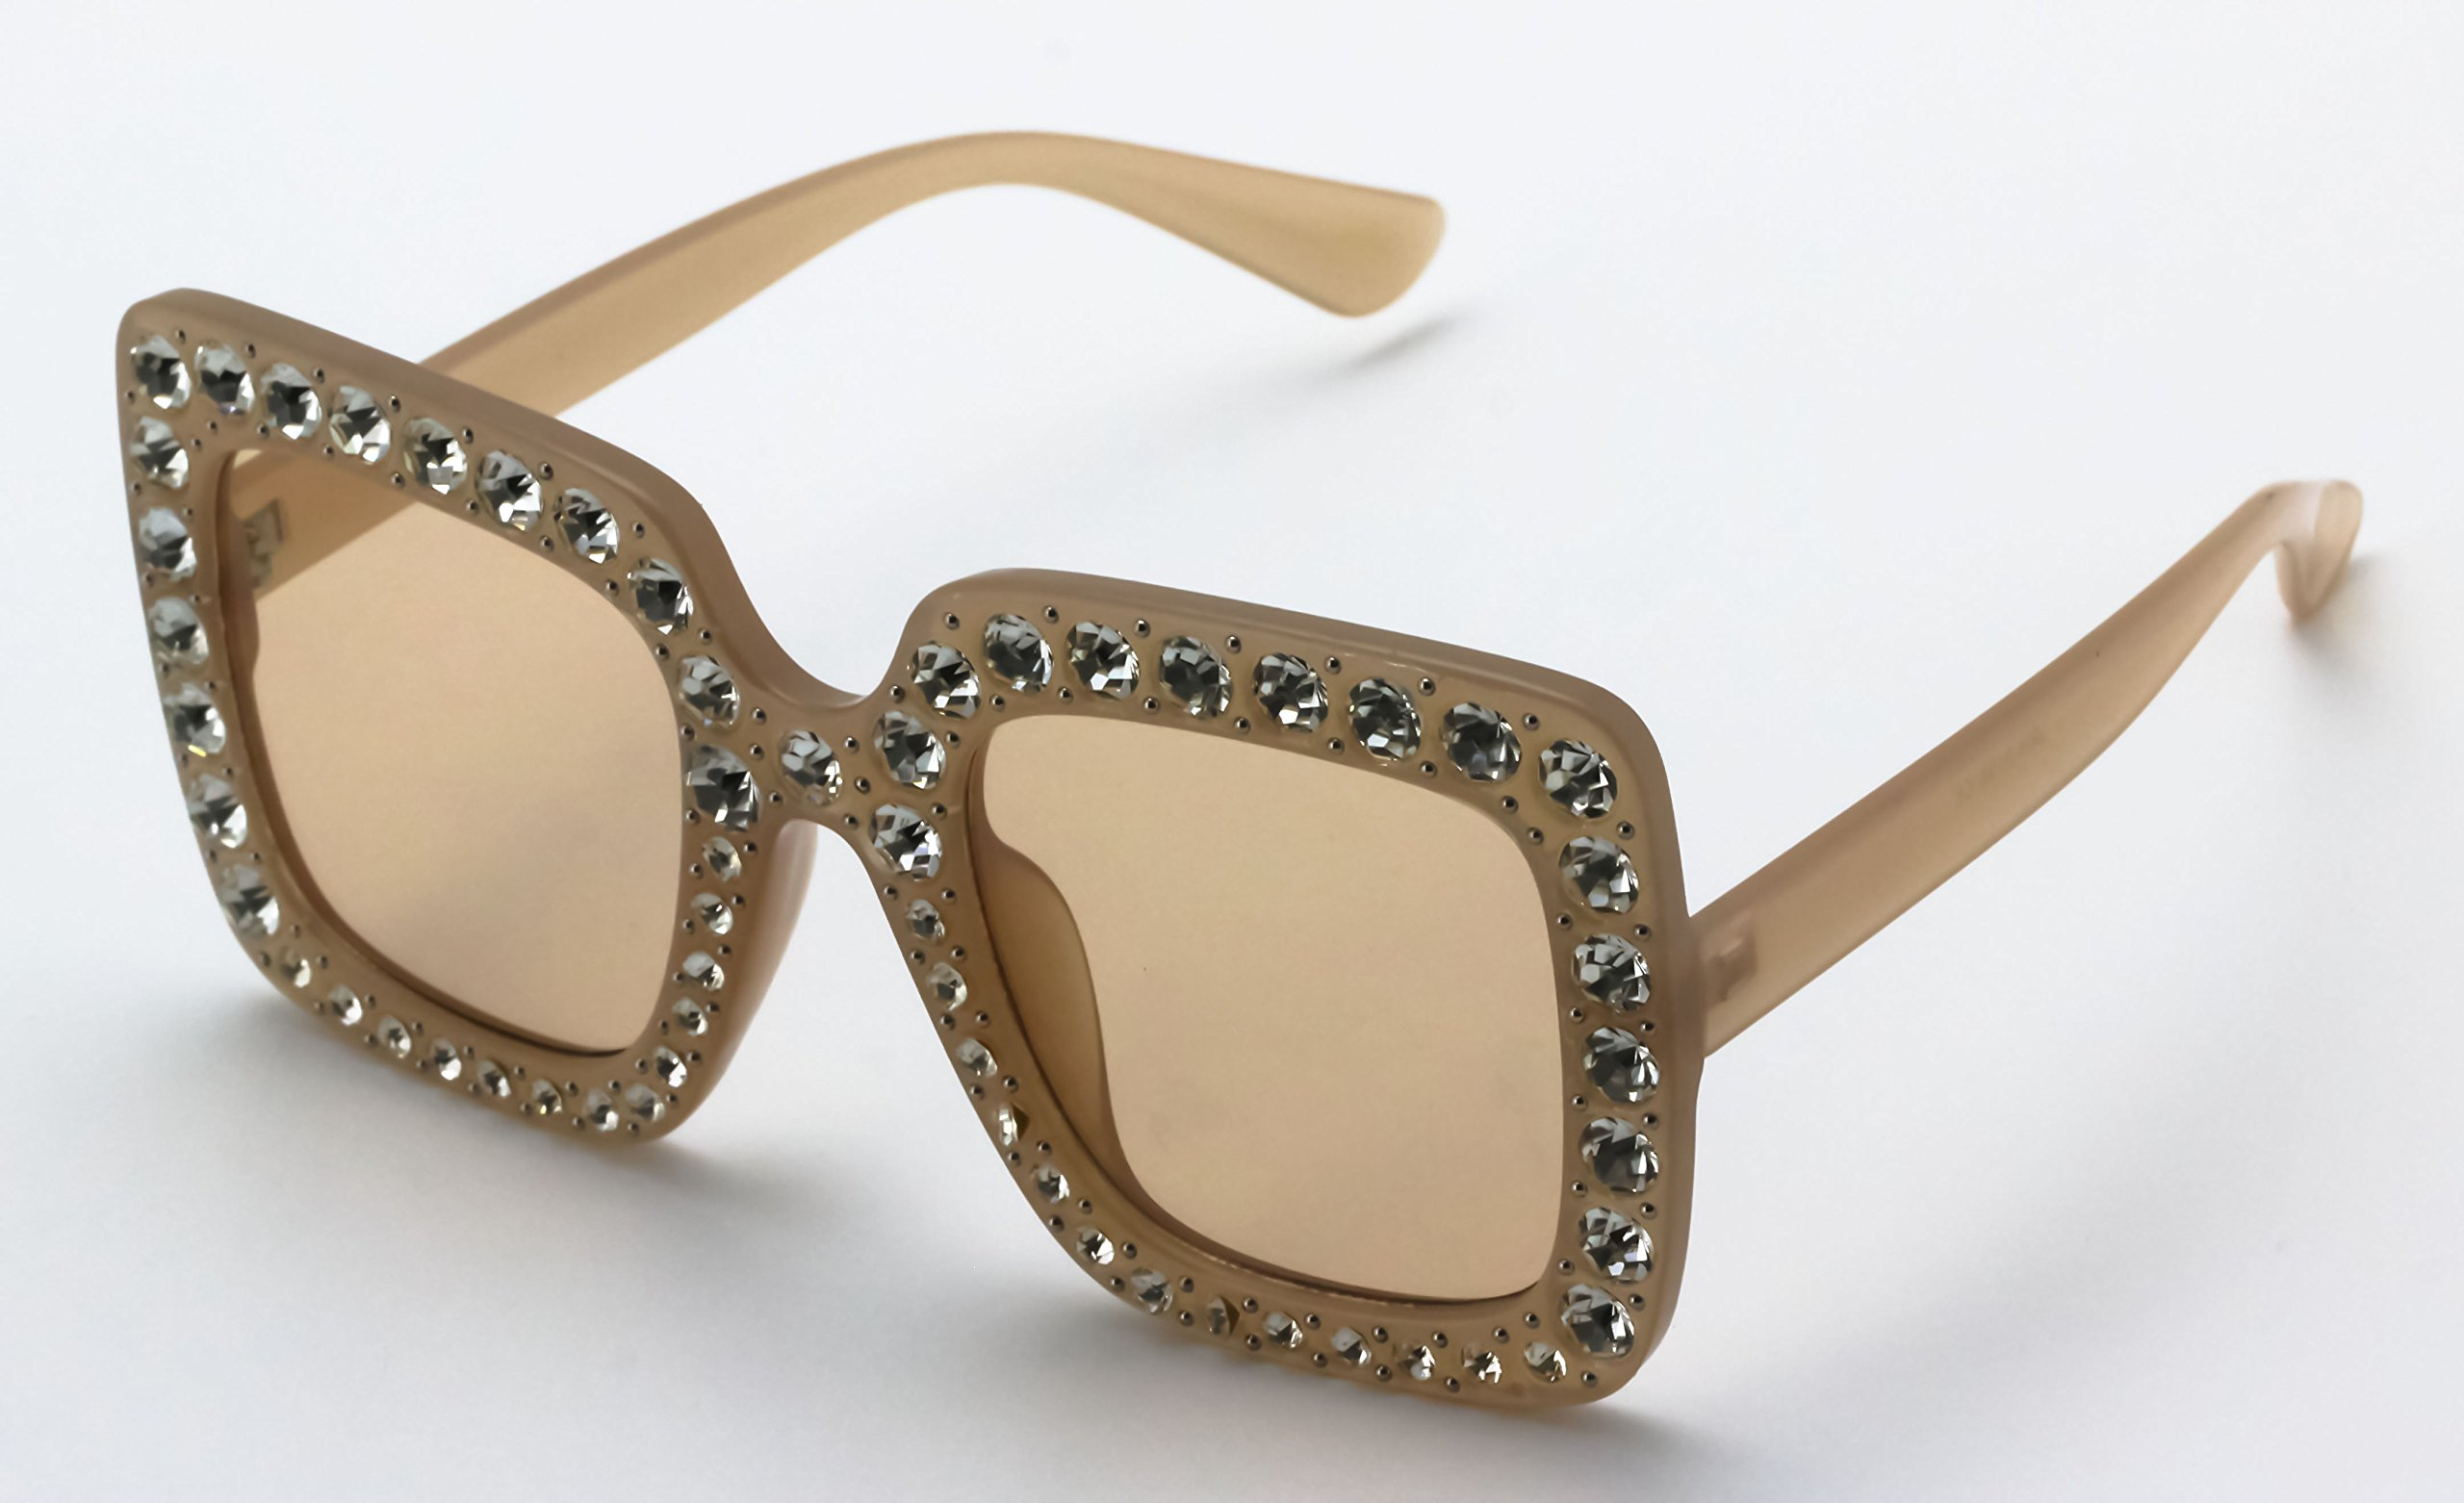 Elite Oversized Square Frame Bling Rhinestone Crystal Brand Designer Sunglasses For Women 2018 (Peach, 52) by Elite Glasses (Image #4)